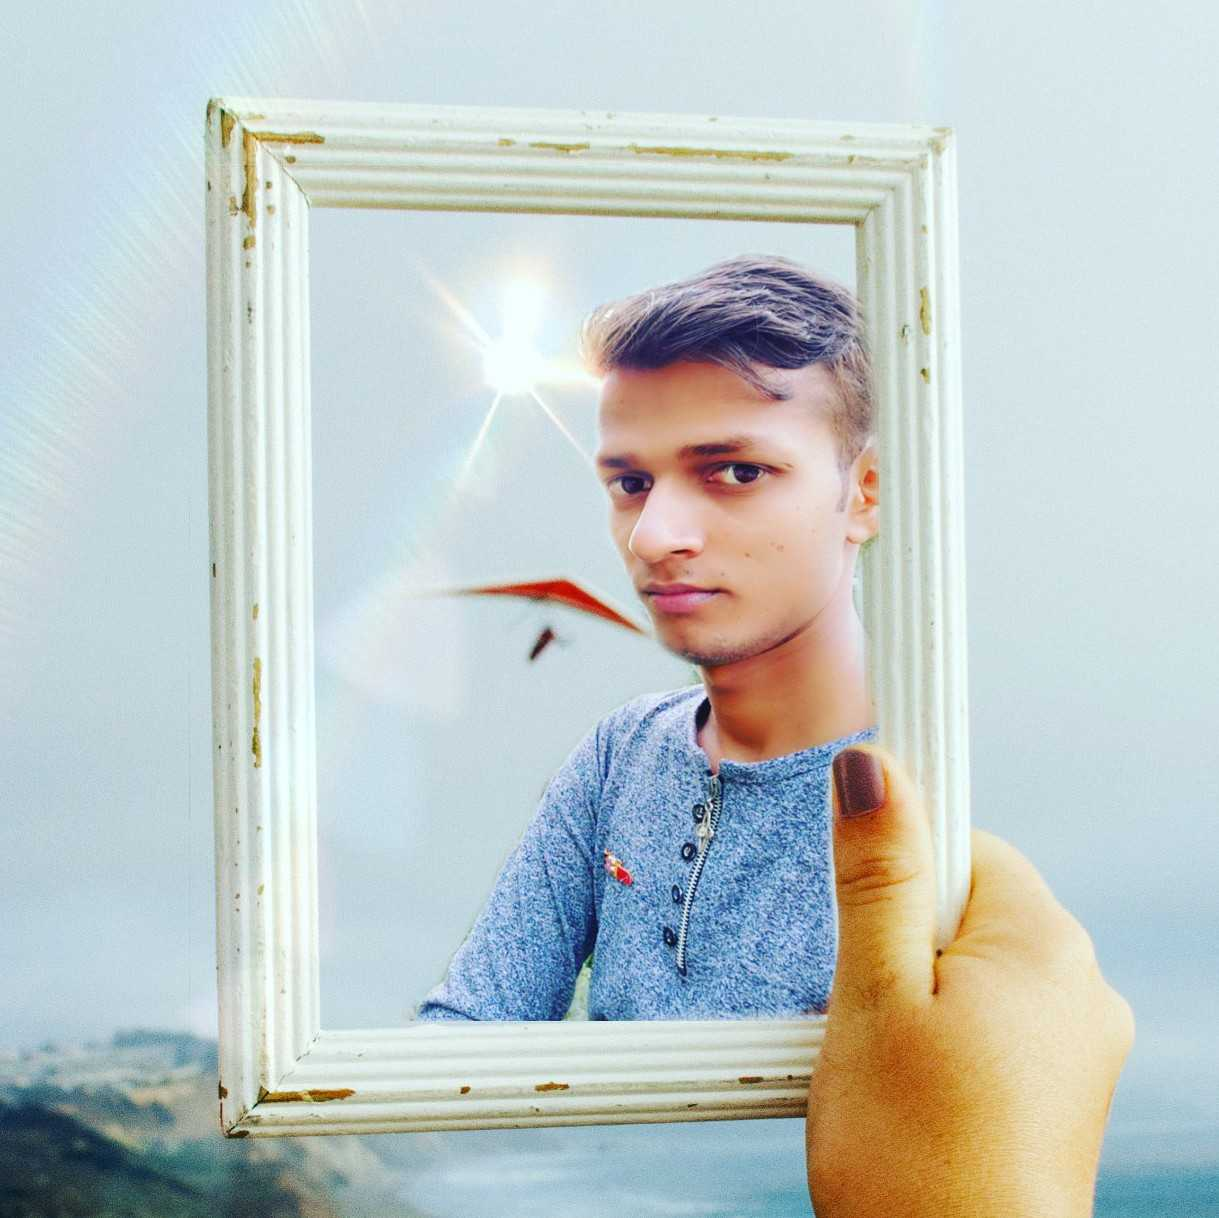 Vives Humor स्टोरी about my love